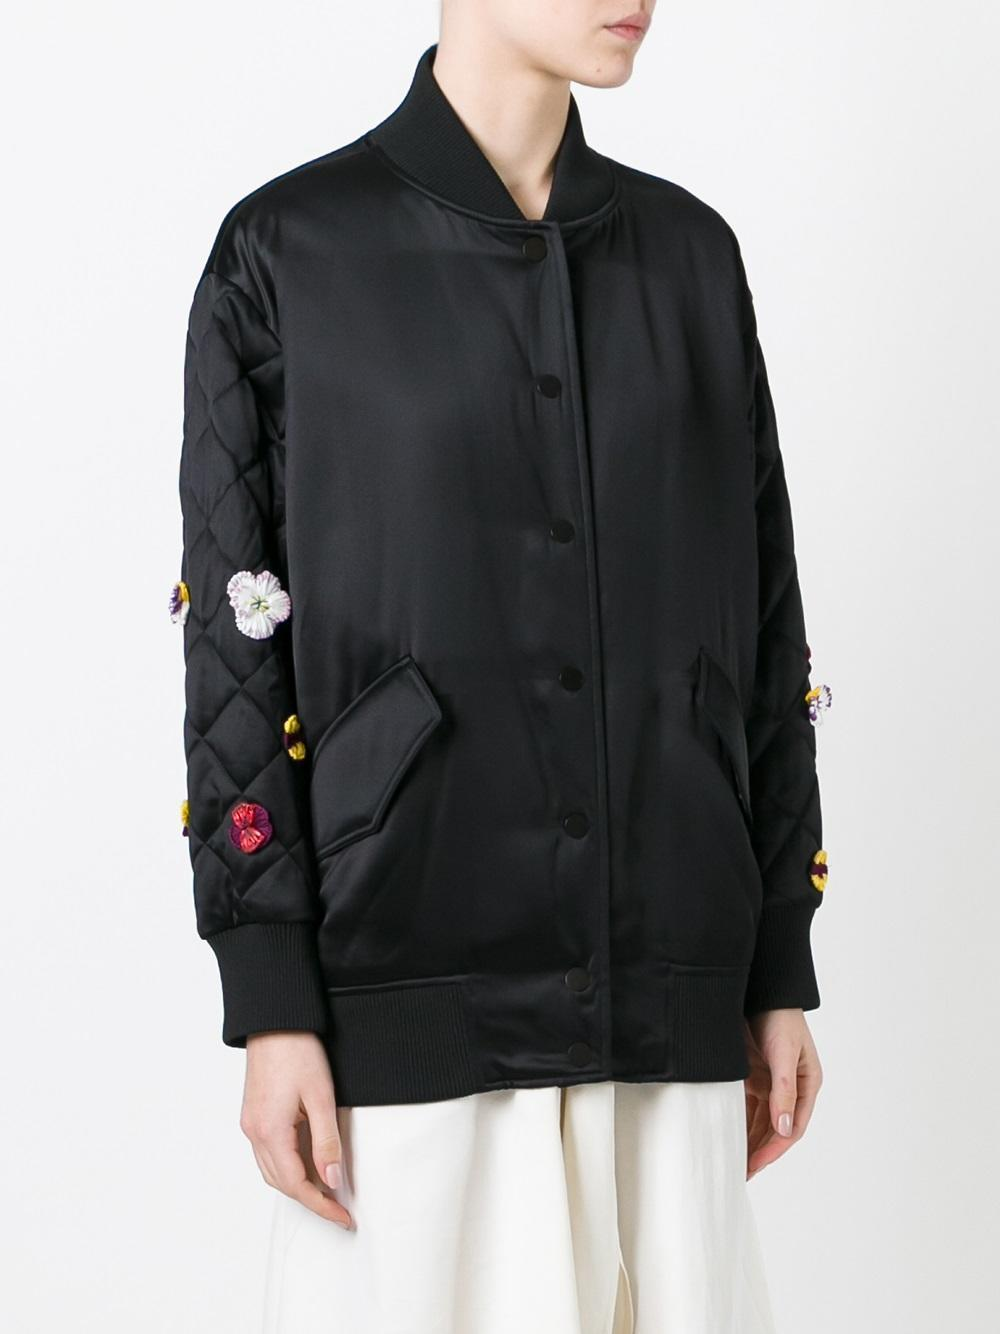 FE1290 FLORAL EMBROIDERY BOMBER JACKET